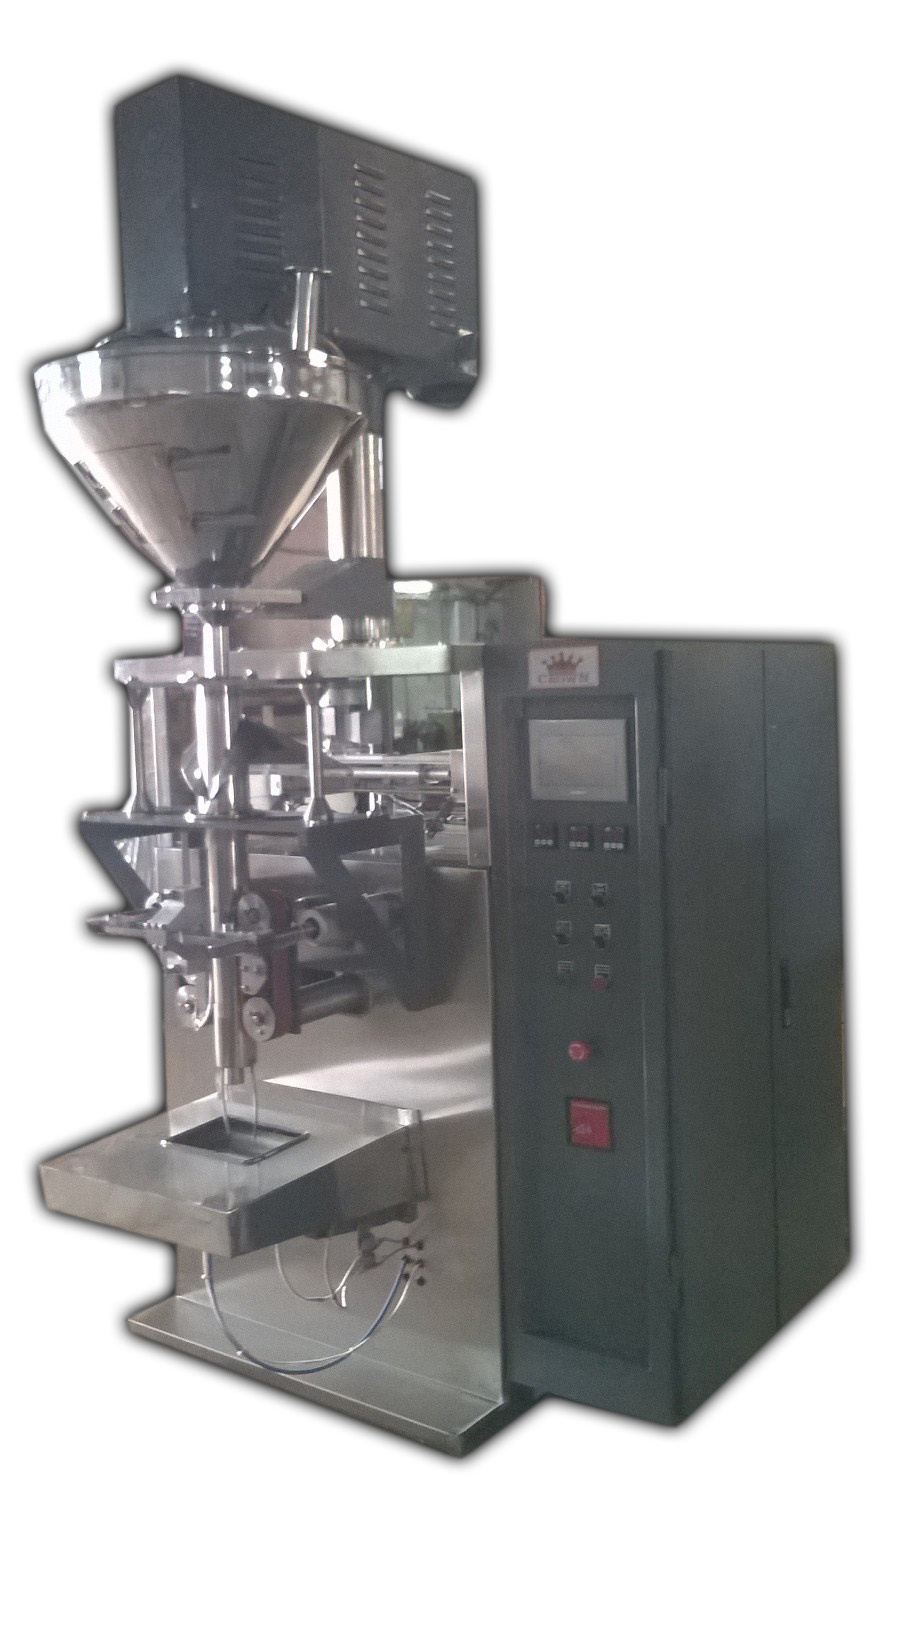 GASSET PACK M/C (MODEL : CR-PP-1000 HI-SPEED SERVO AUGUR FILLER)